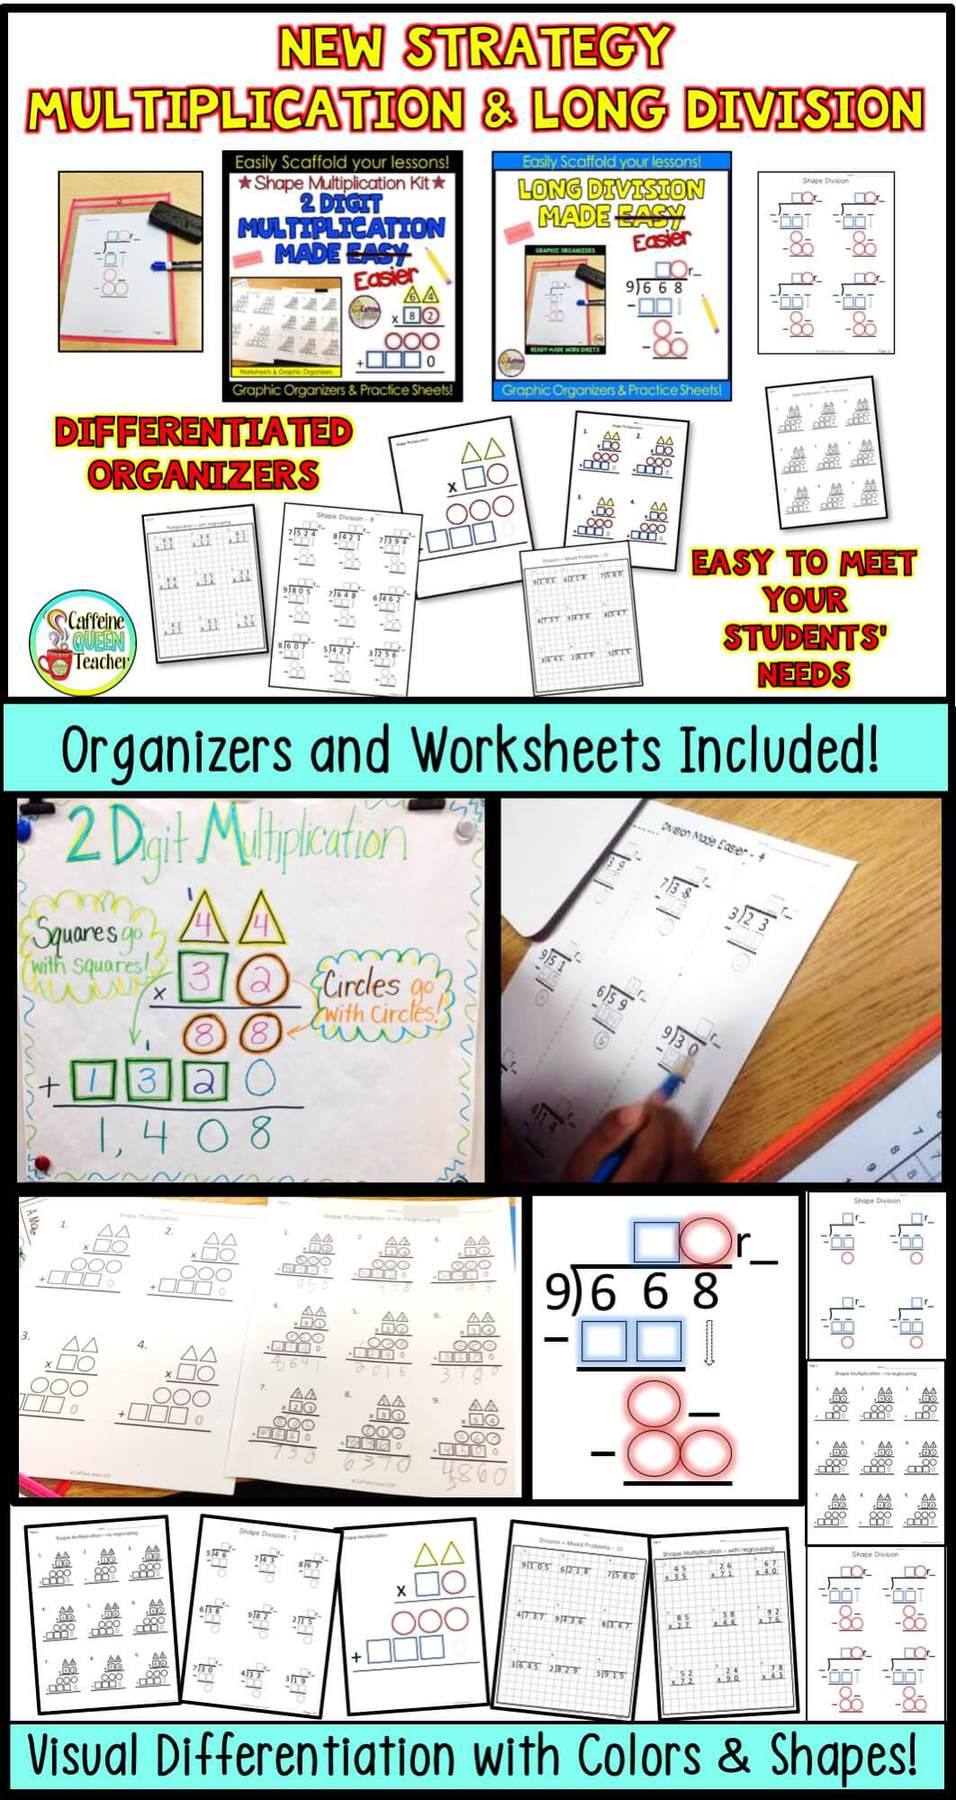 A New Strategy For Multiplication And Long Division